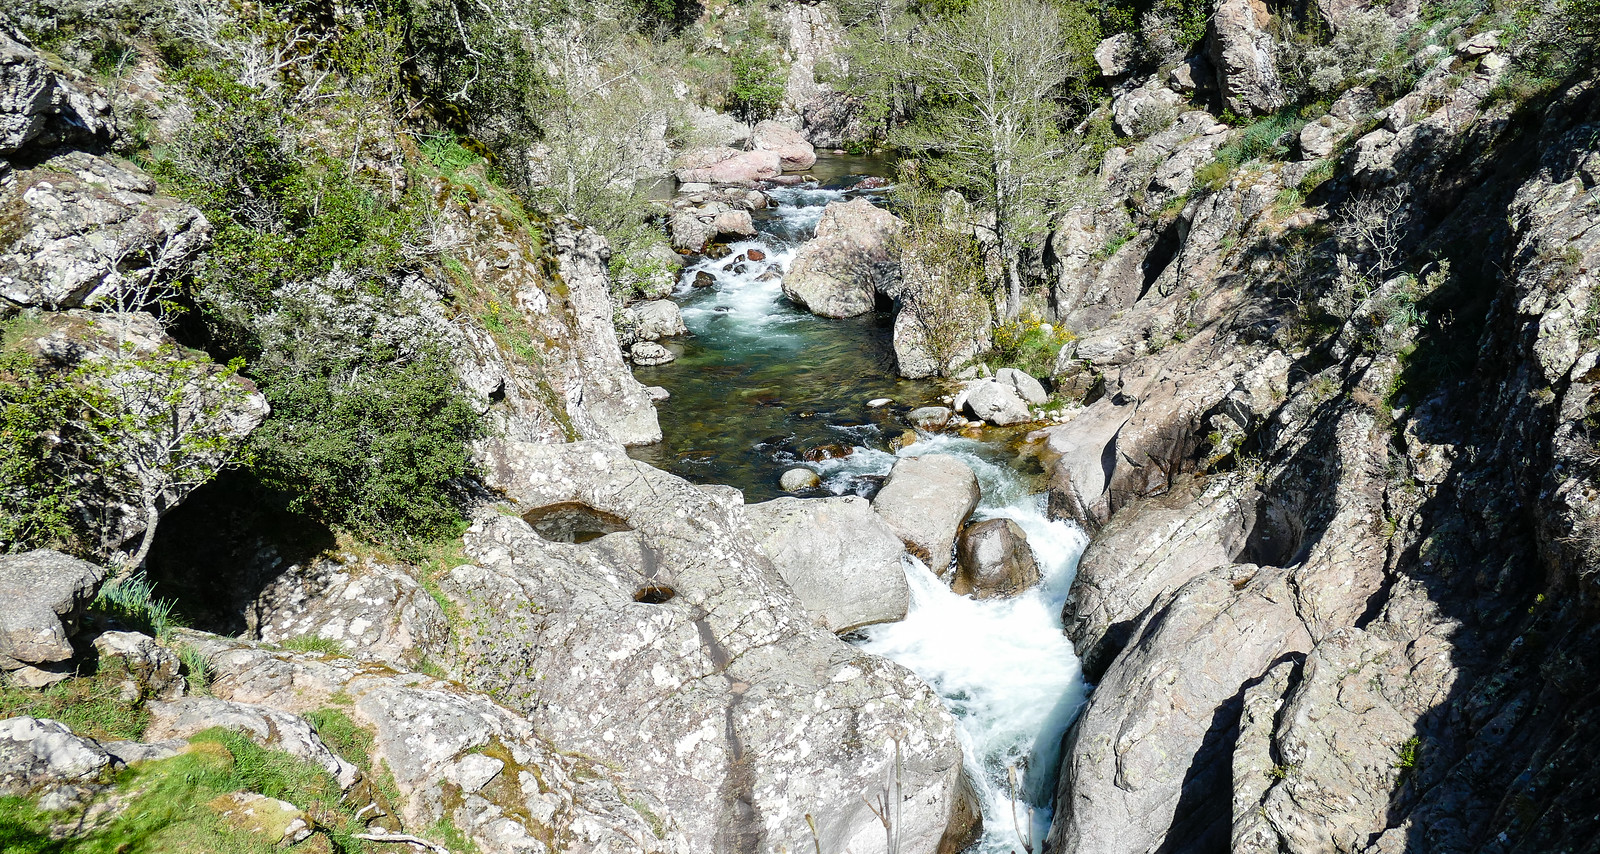 rocky gorge with waterfall